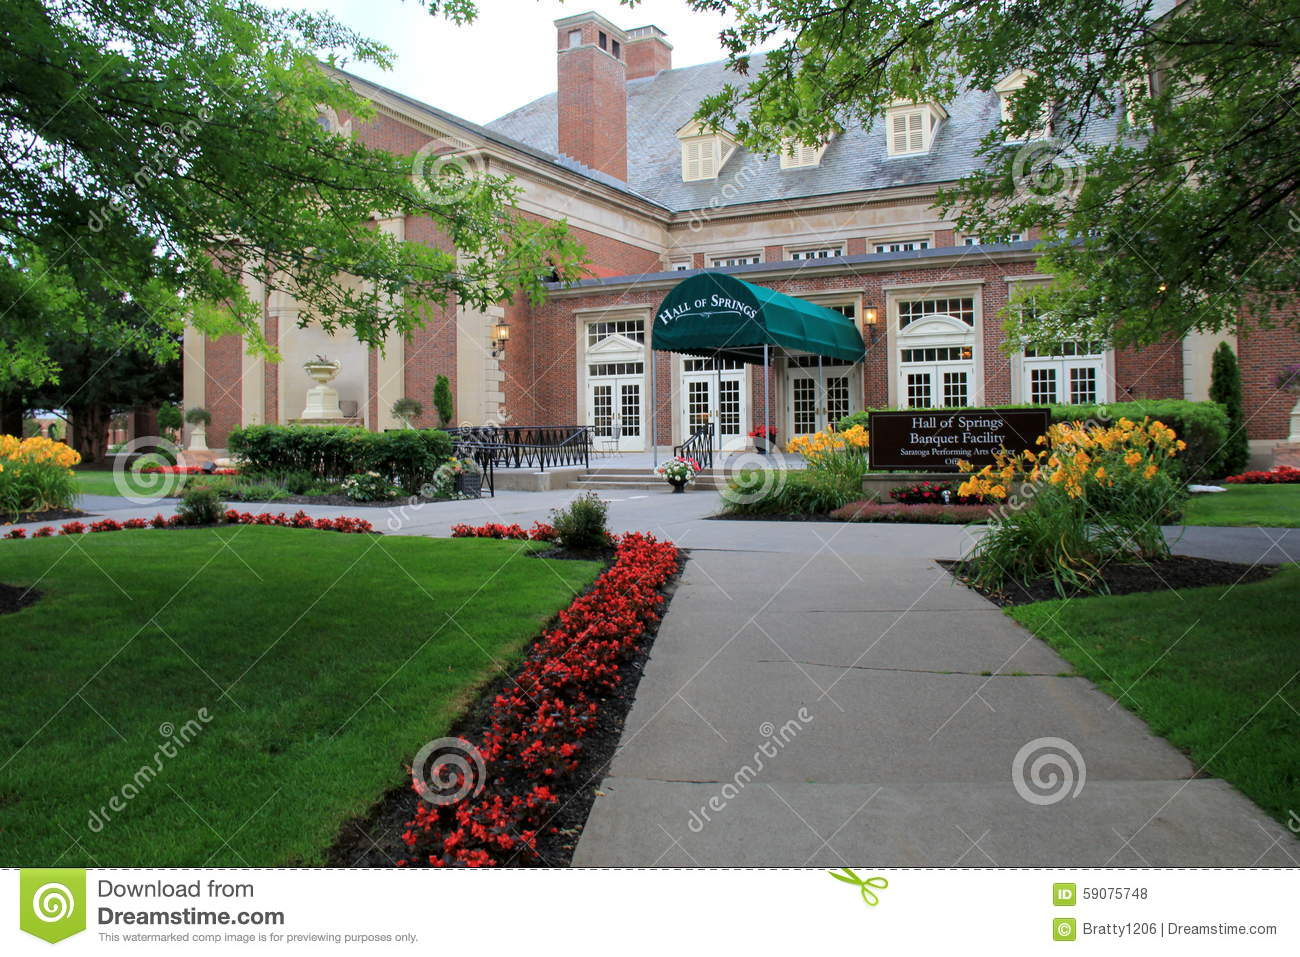 Historic hotel gideon putnam saratoga springs new york for Hotels saratoga springs new york